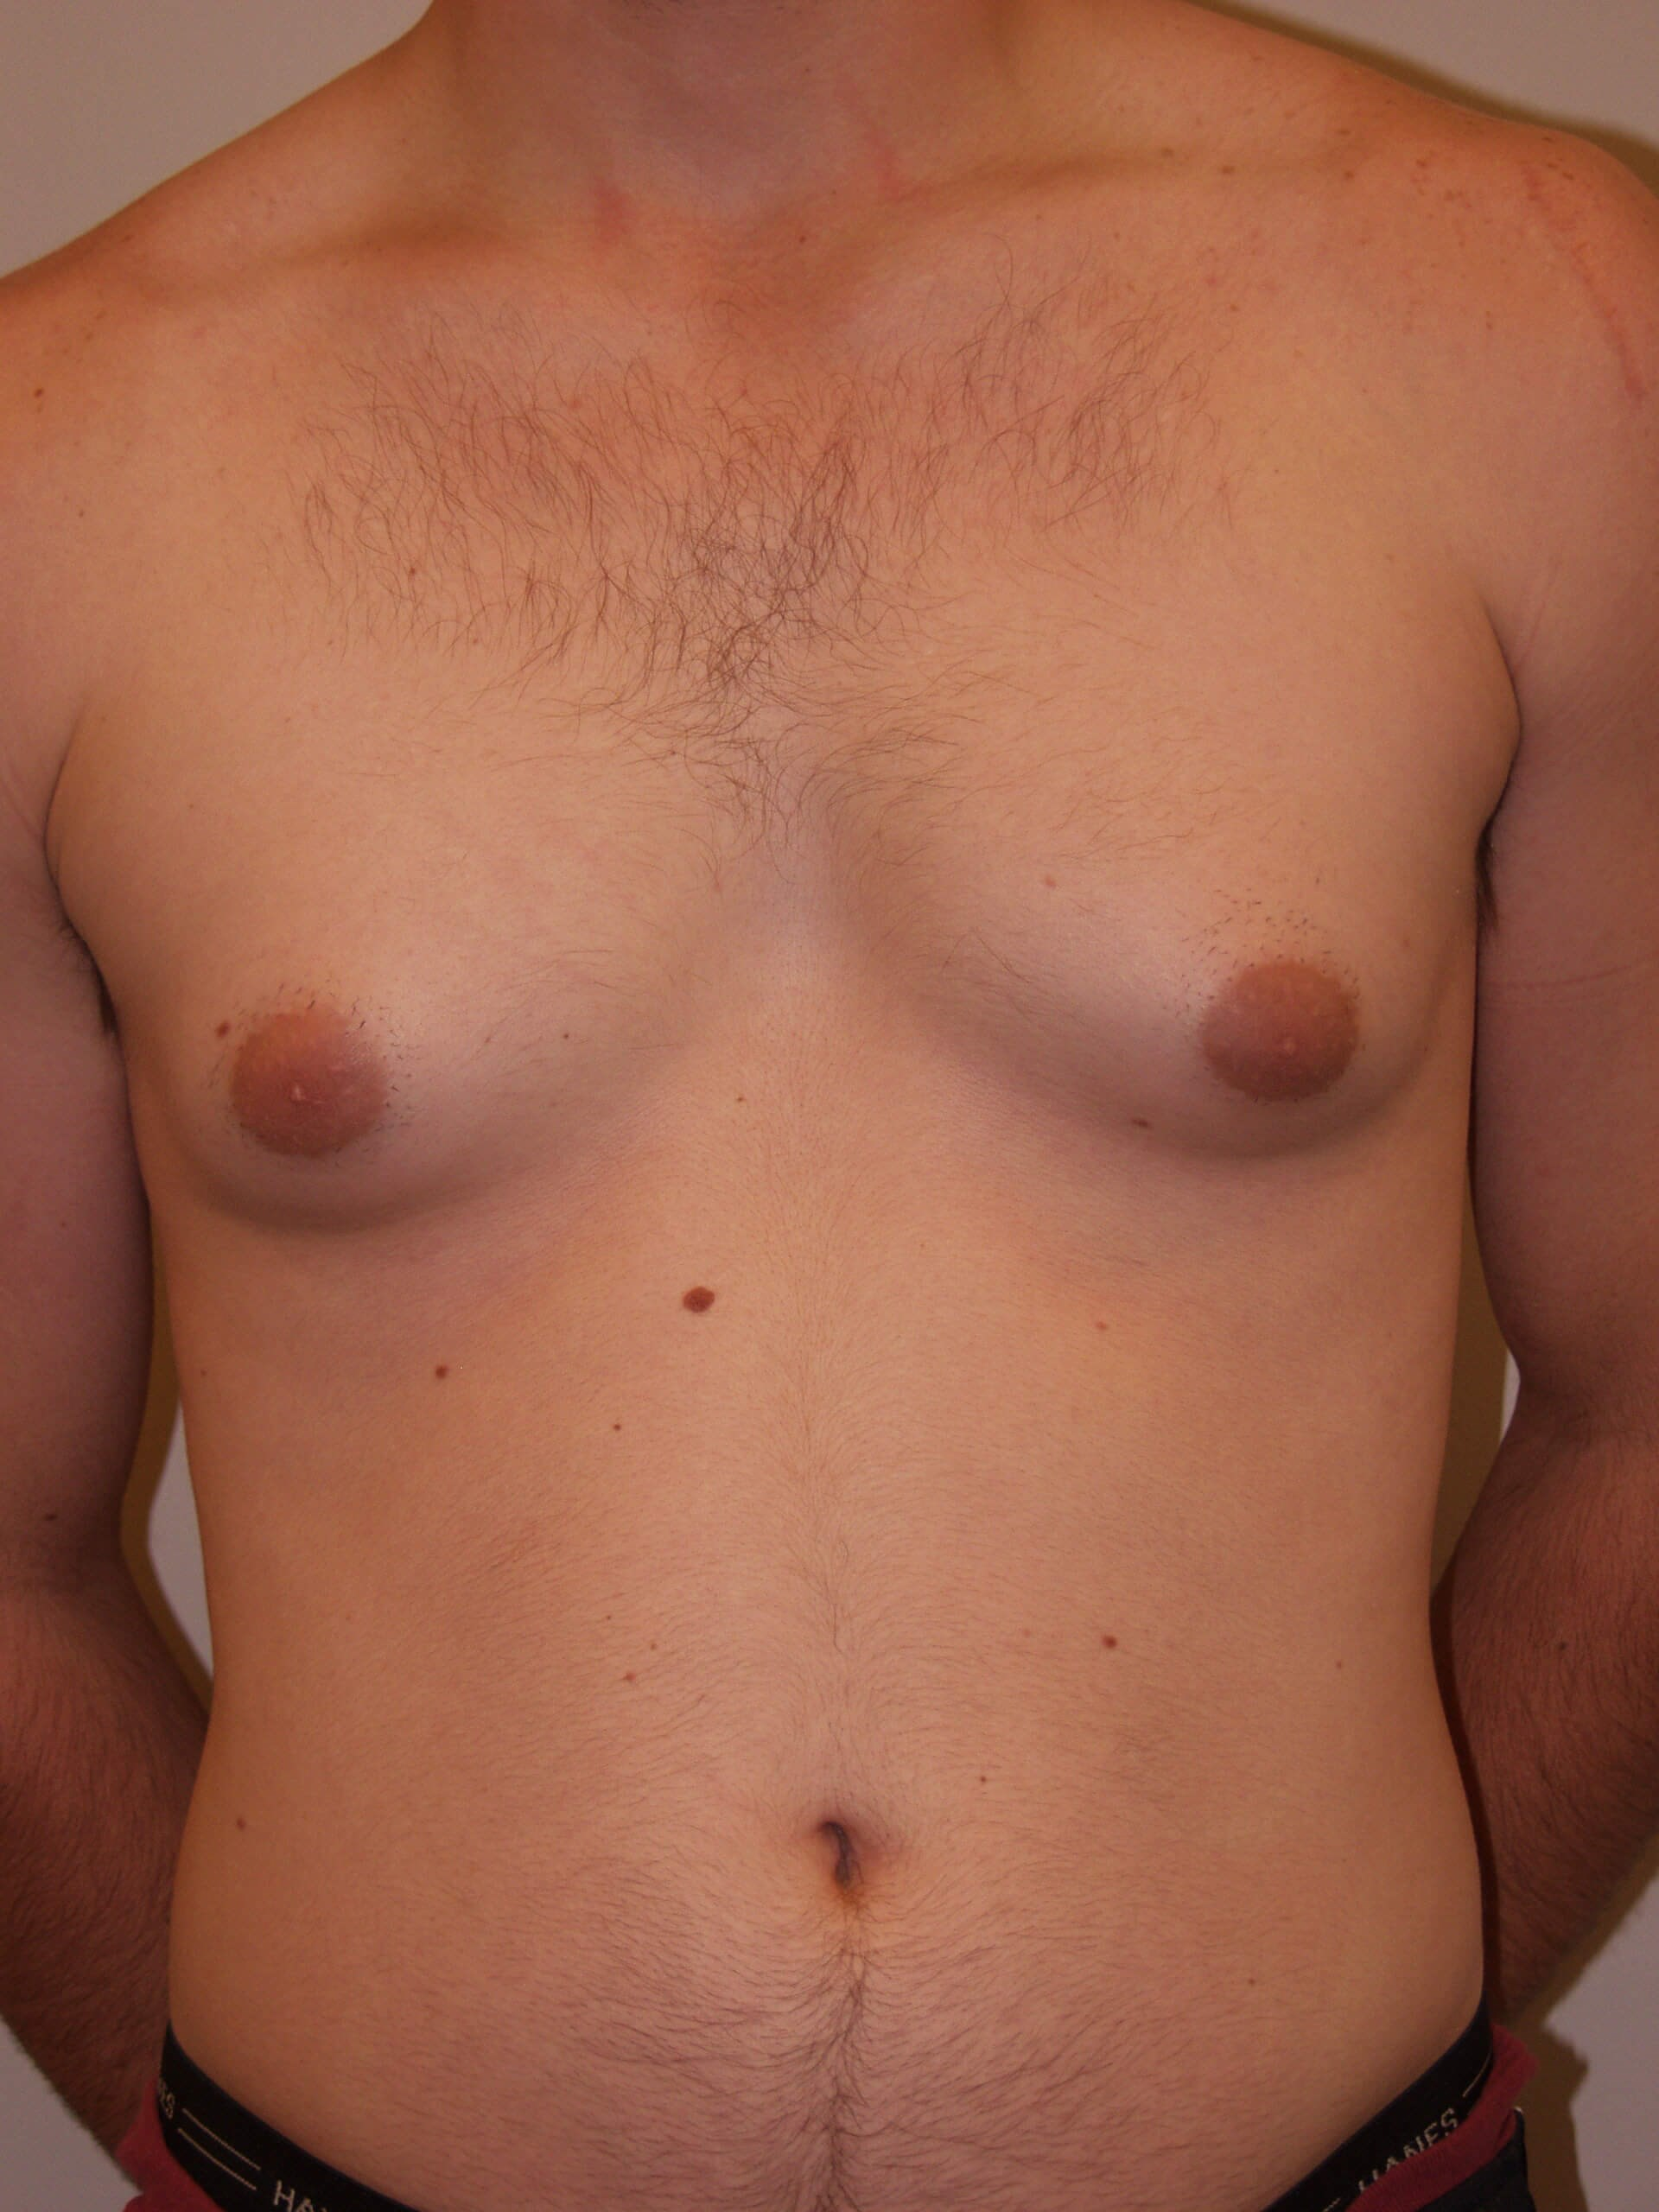 Gynecomastia Reduction Before